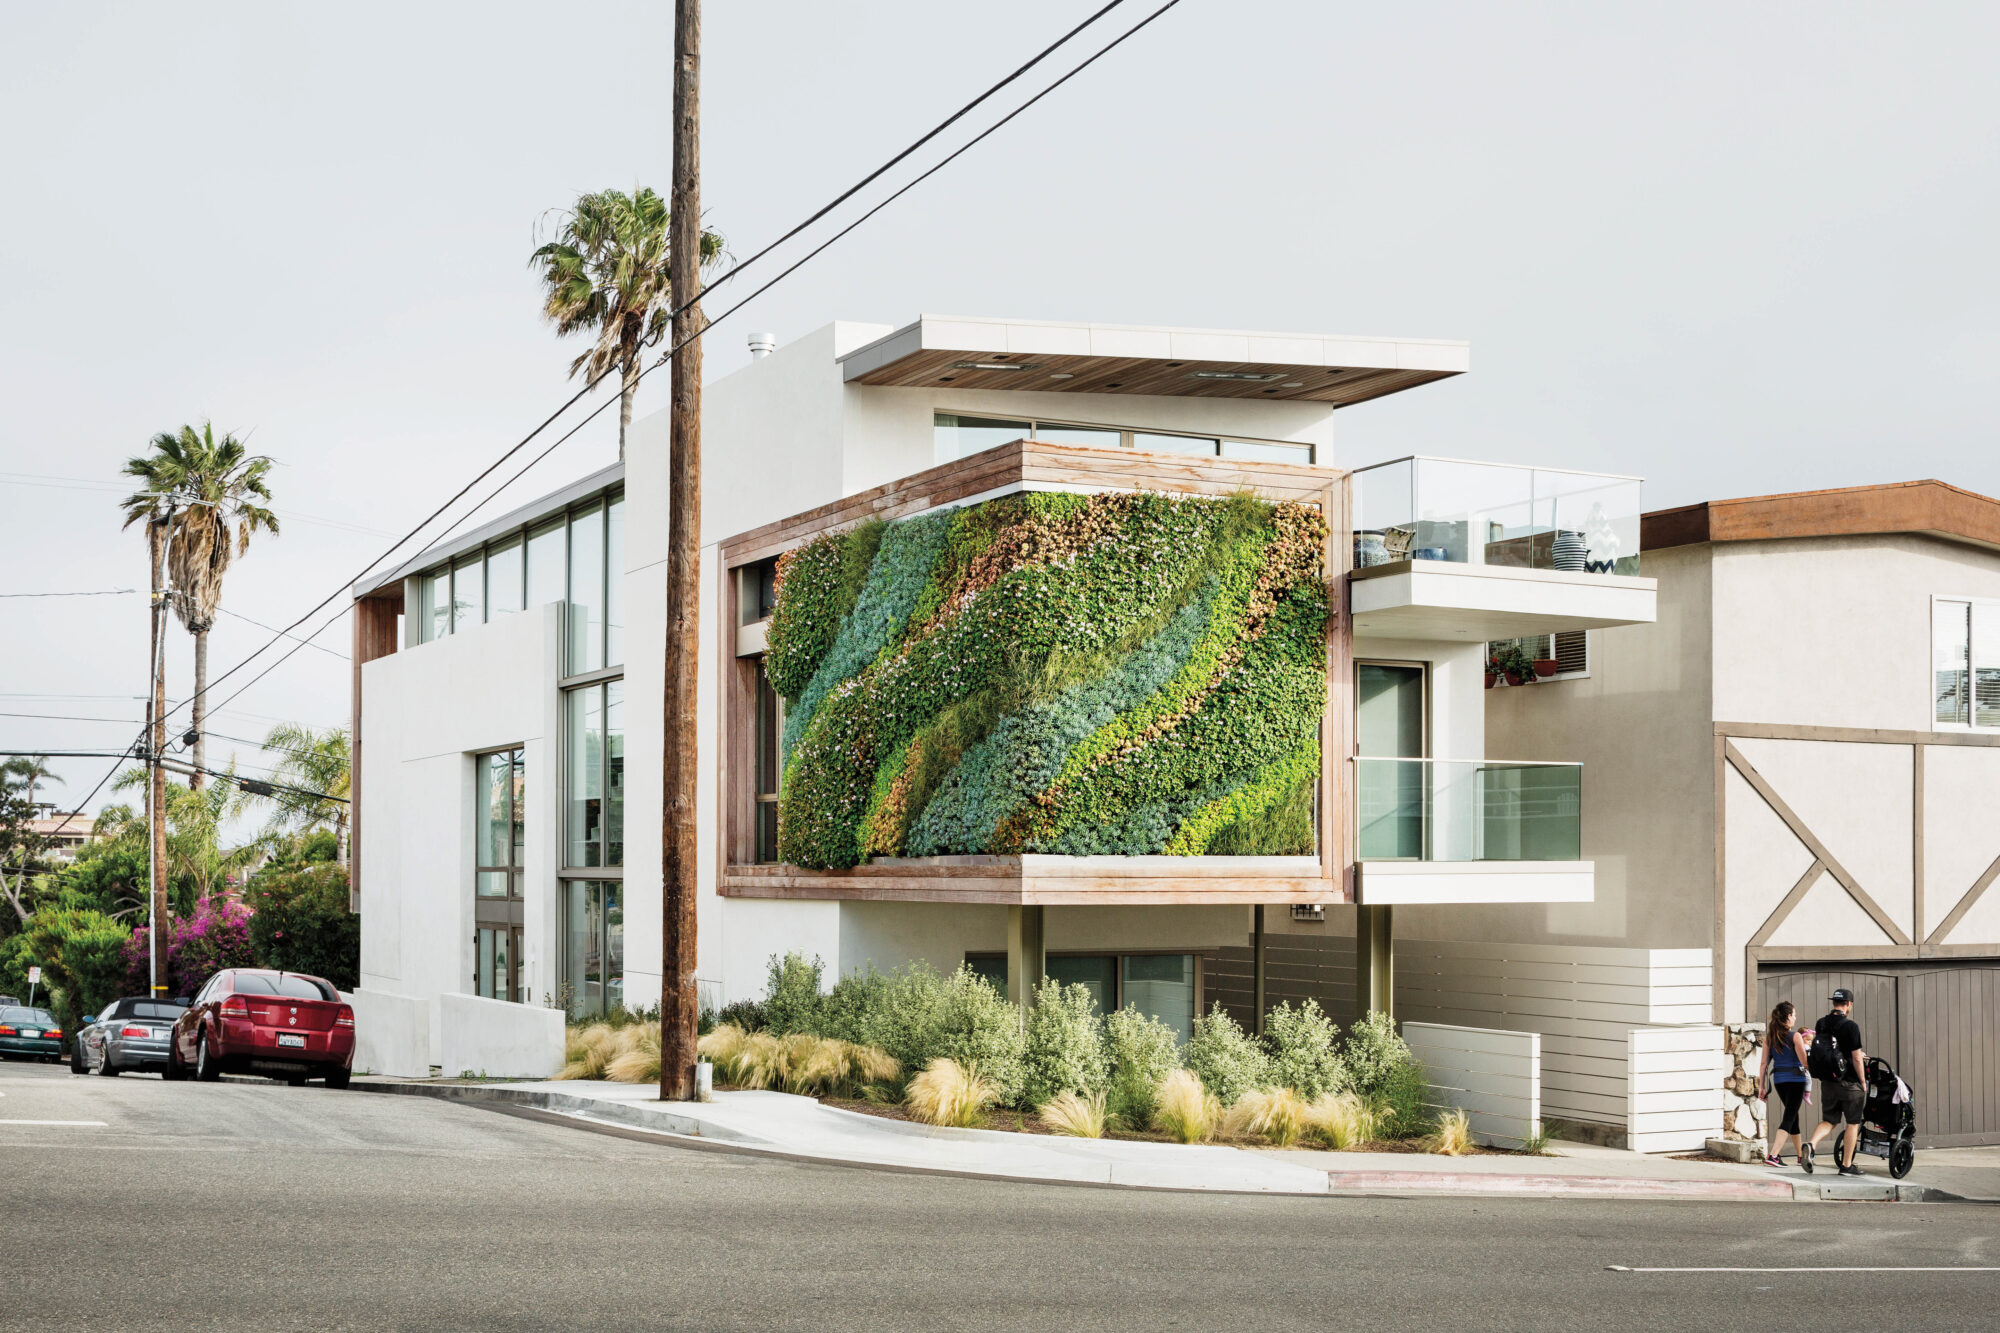 Habitat Horticulture's Wondrous Walls Have Admirers Seeing Green